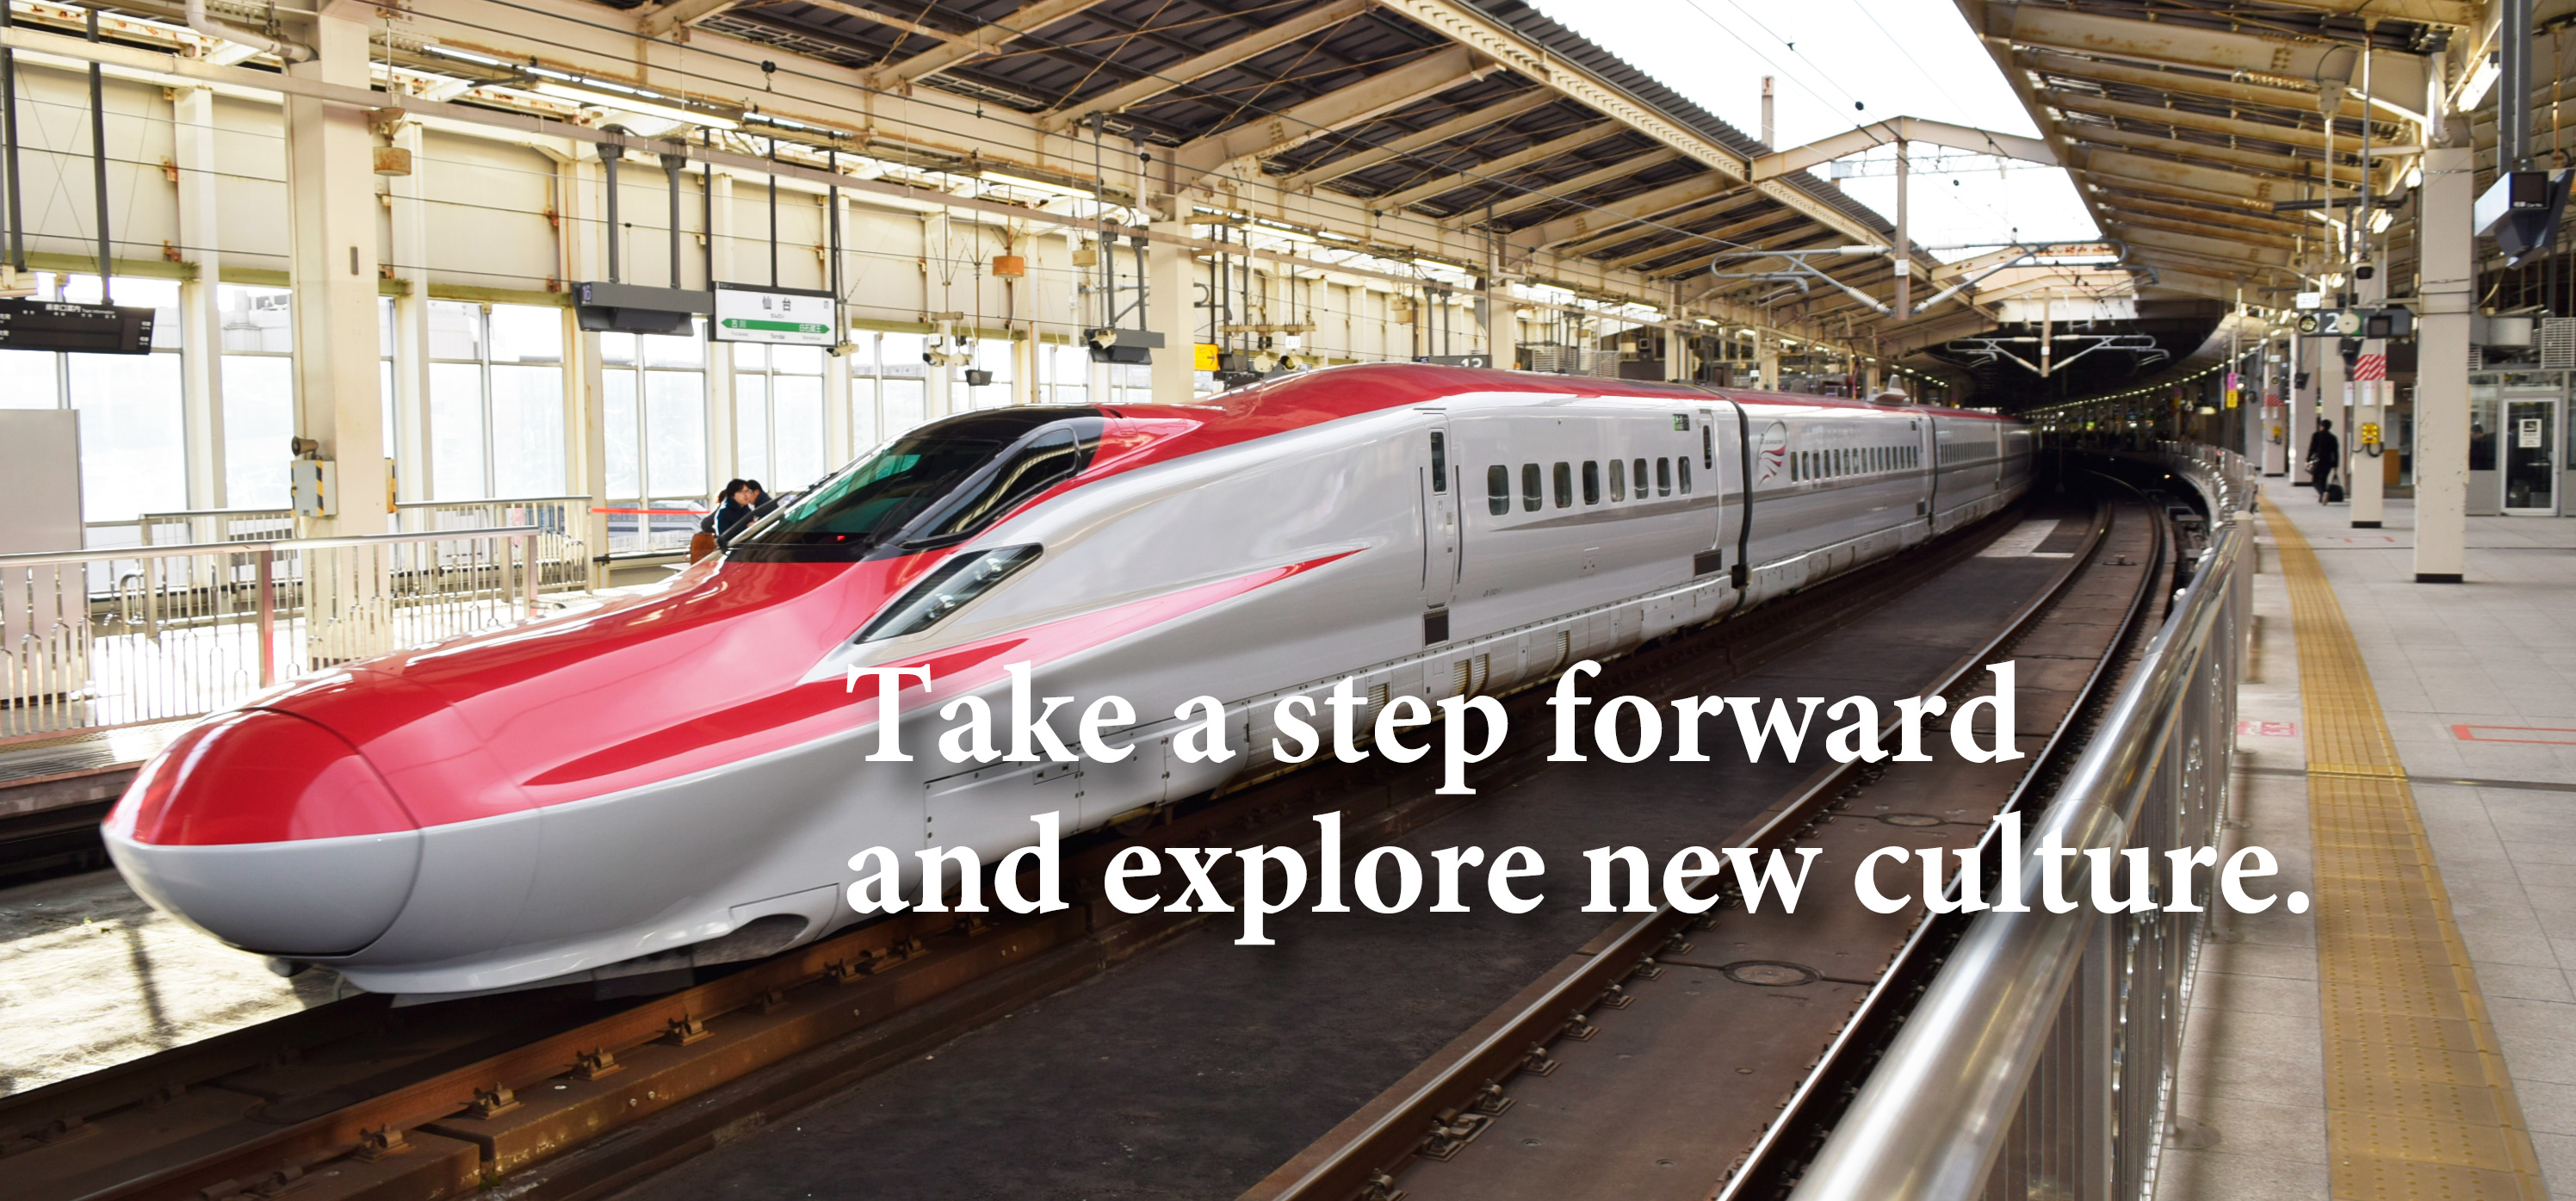 Take a step forward and explore new culture.